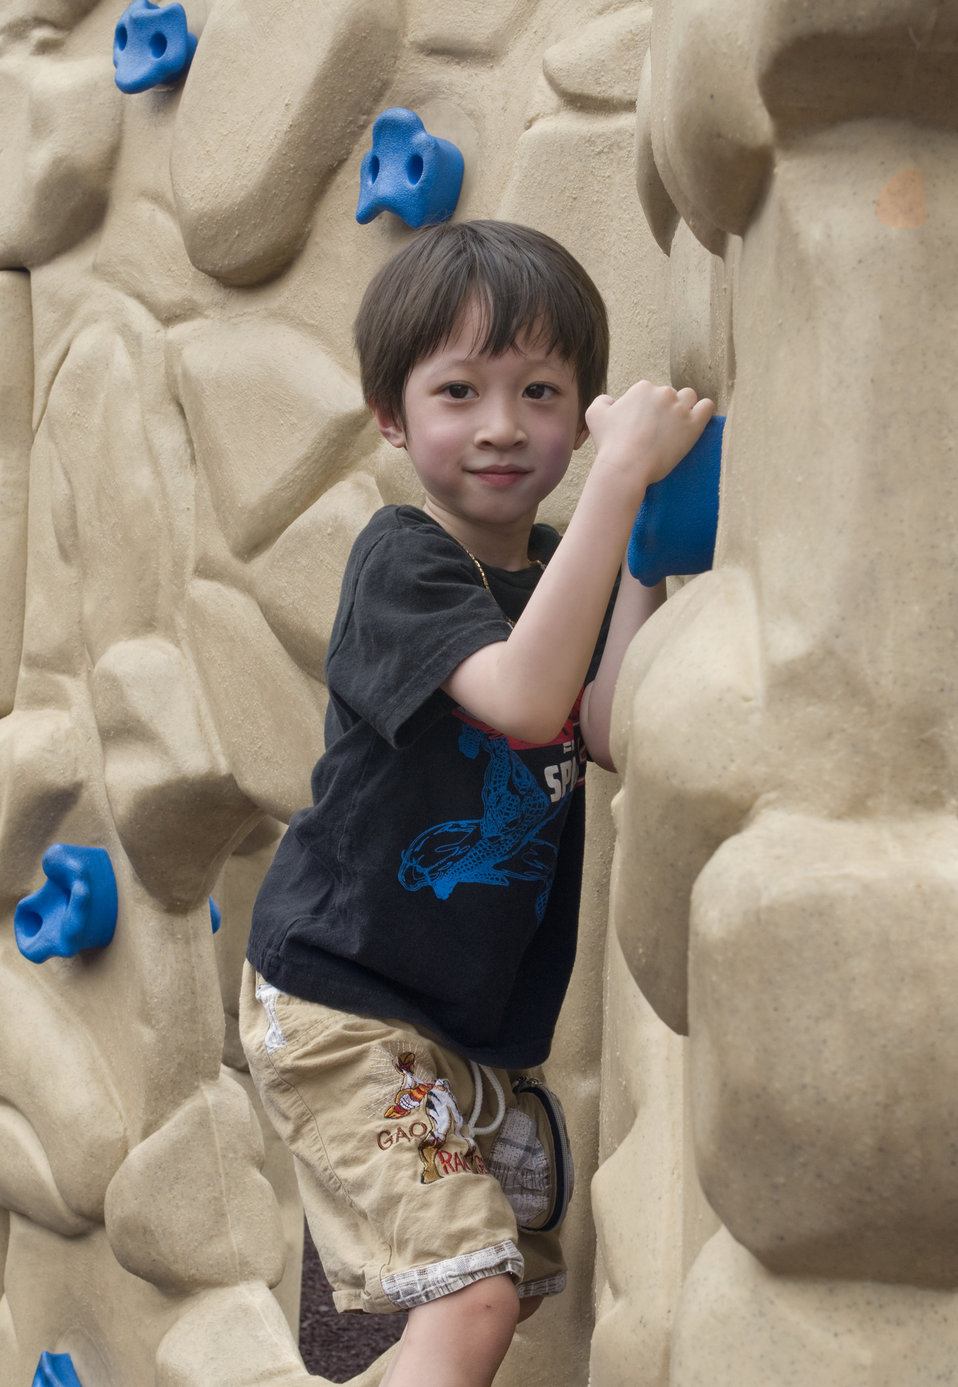 A young boy climbing a rock wall